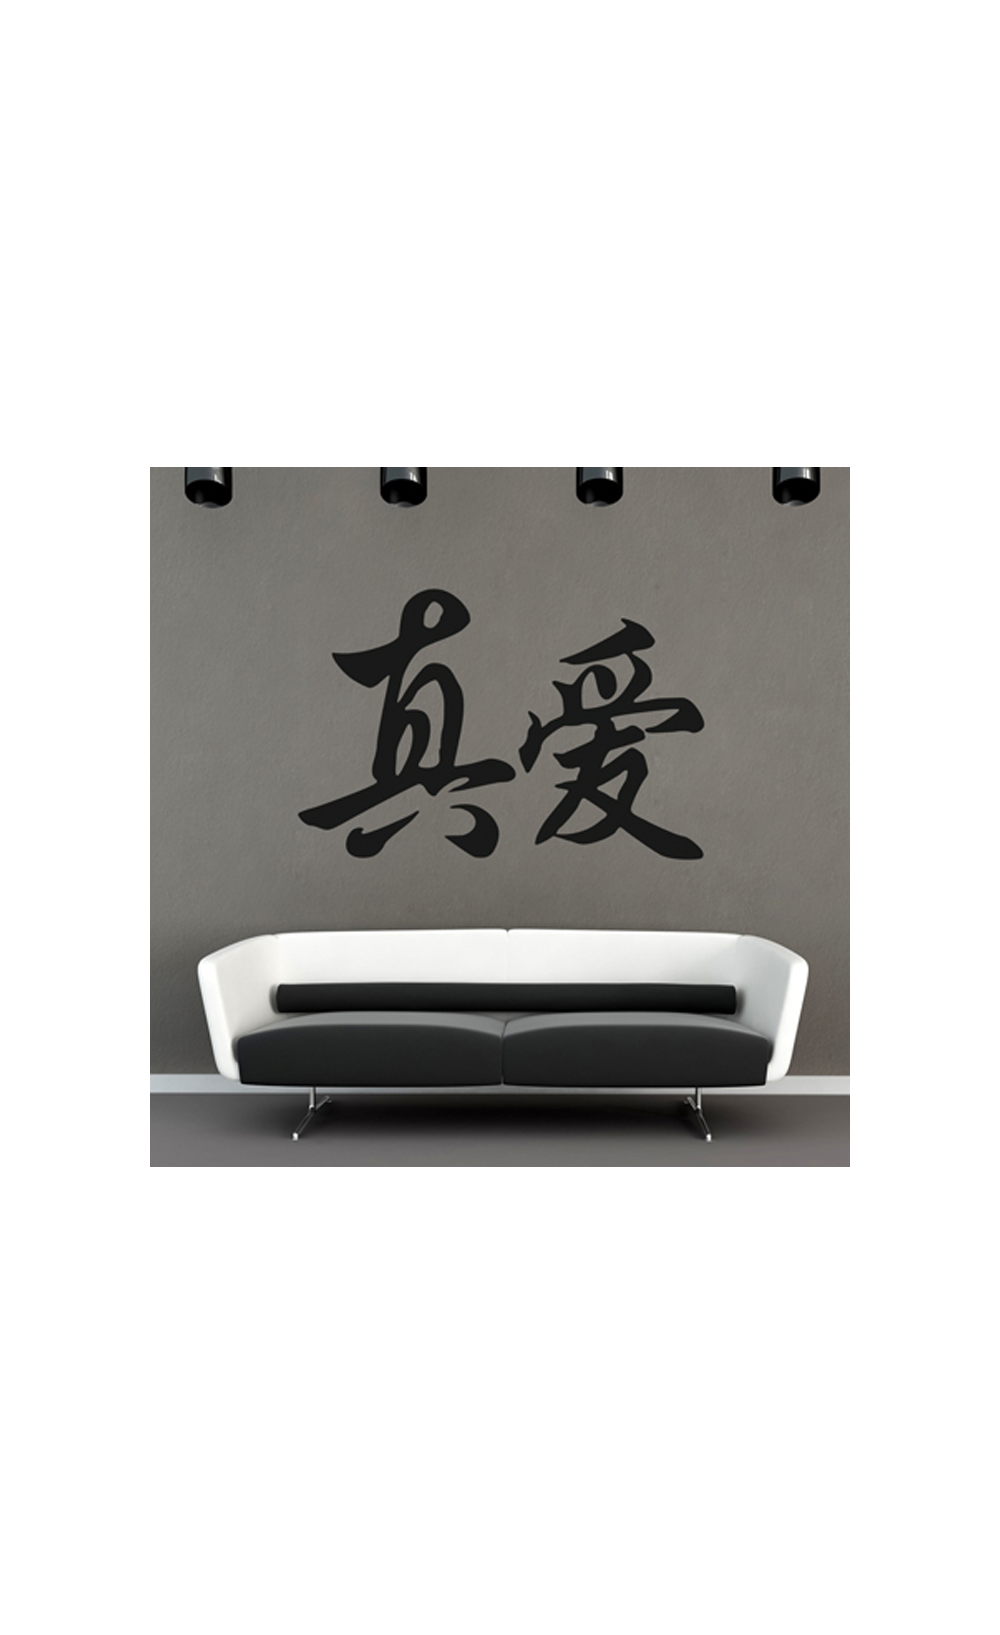 sticker mural pour d corer son int rieur petit prix mod le chinois amour profond. Black Bedroom Furniture Sets. Home Design Ideas